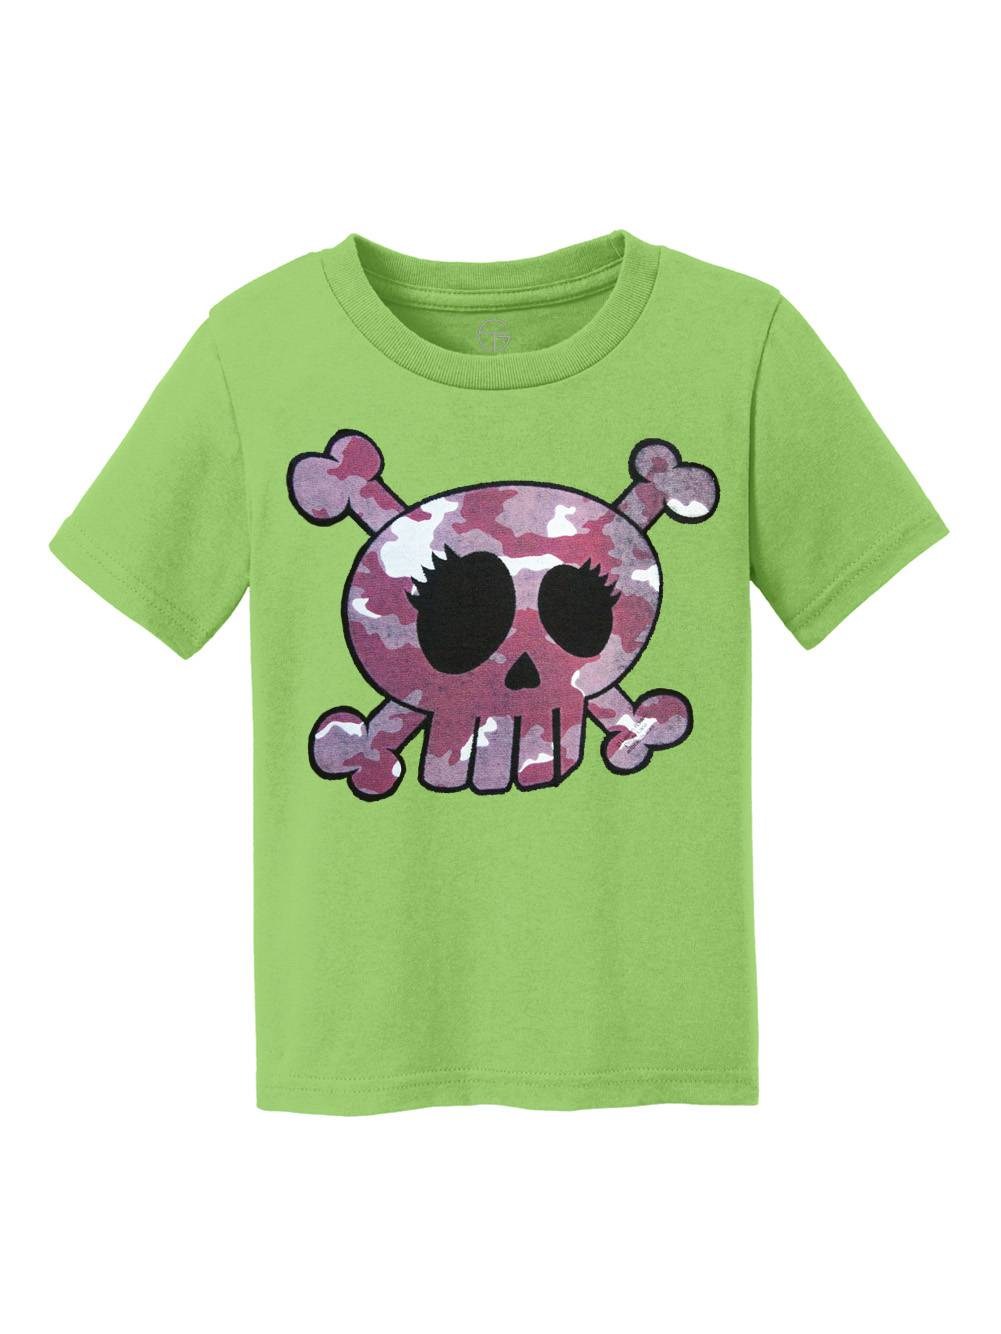 Pink Camo Skull Youth Cotton T-Shirt